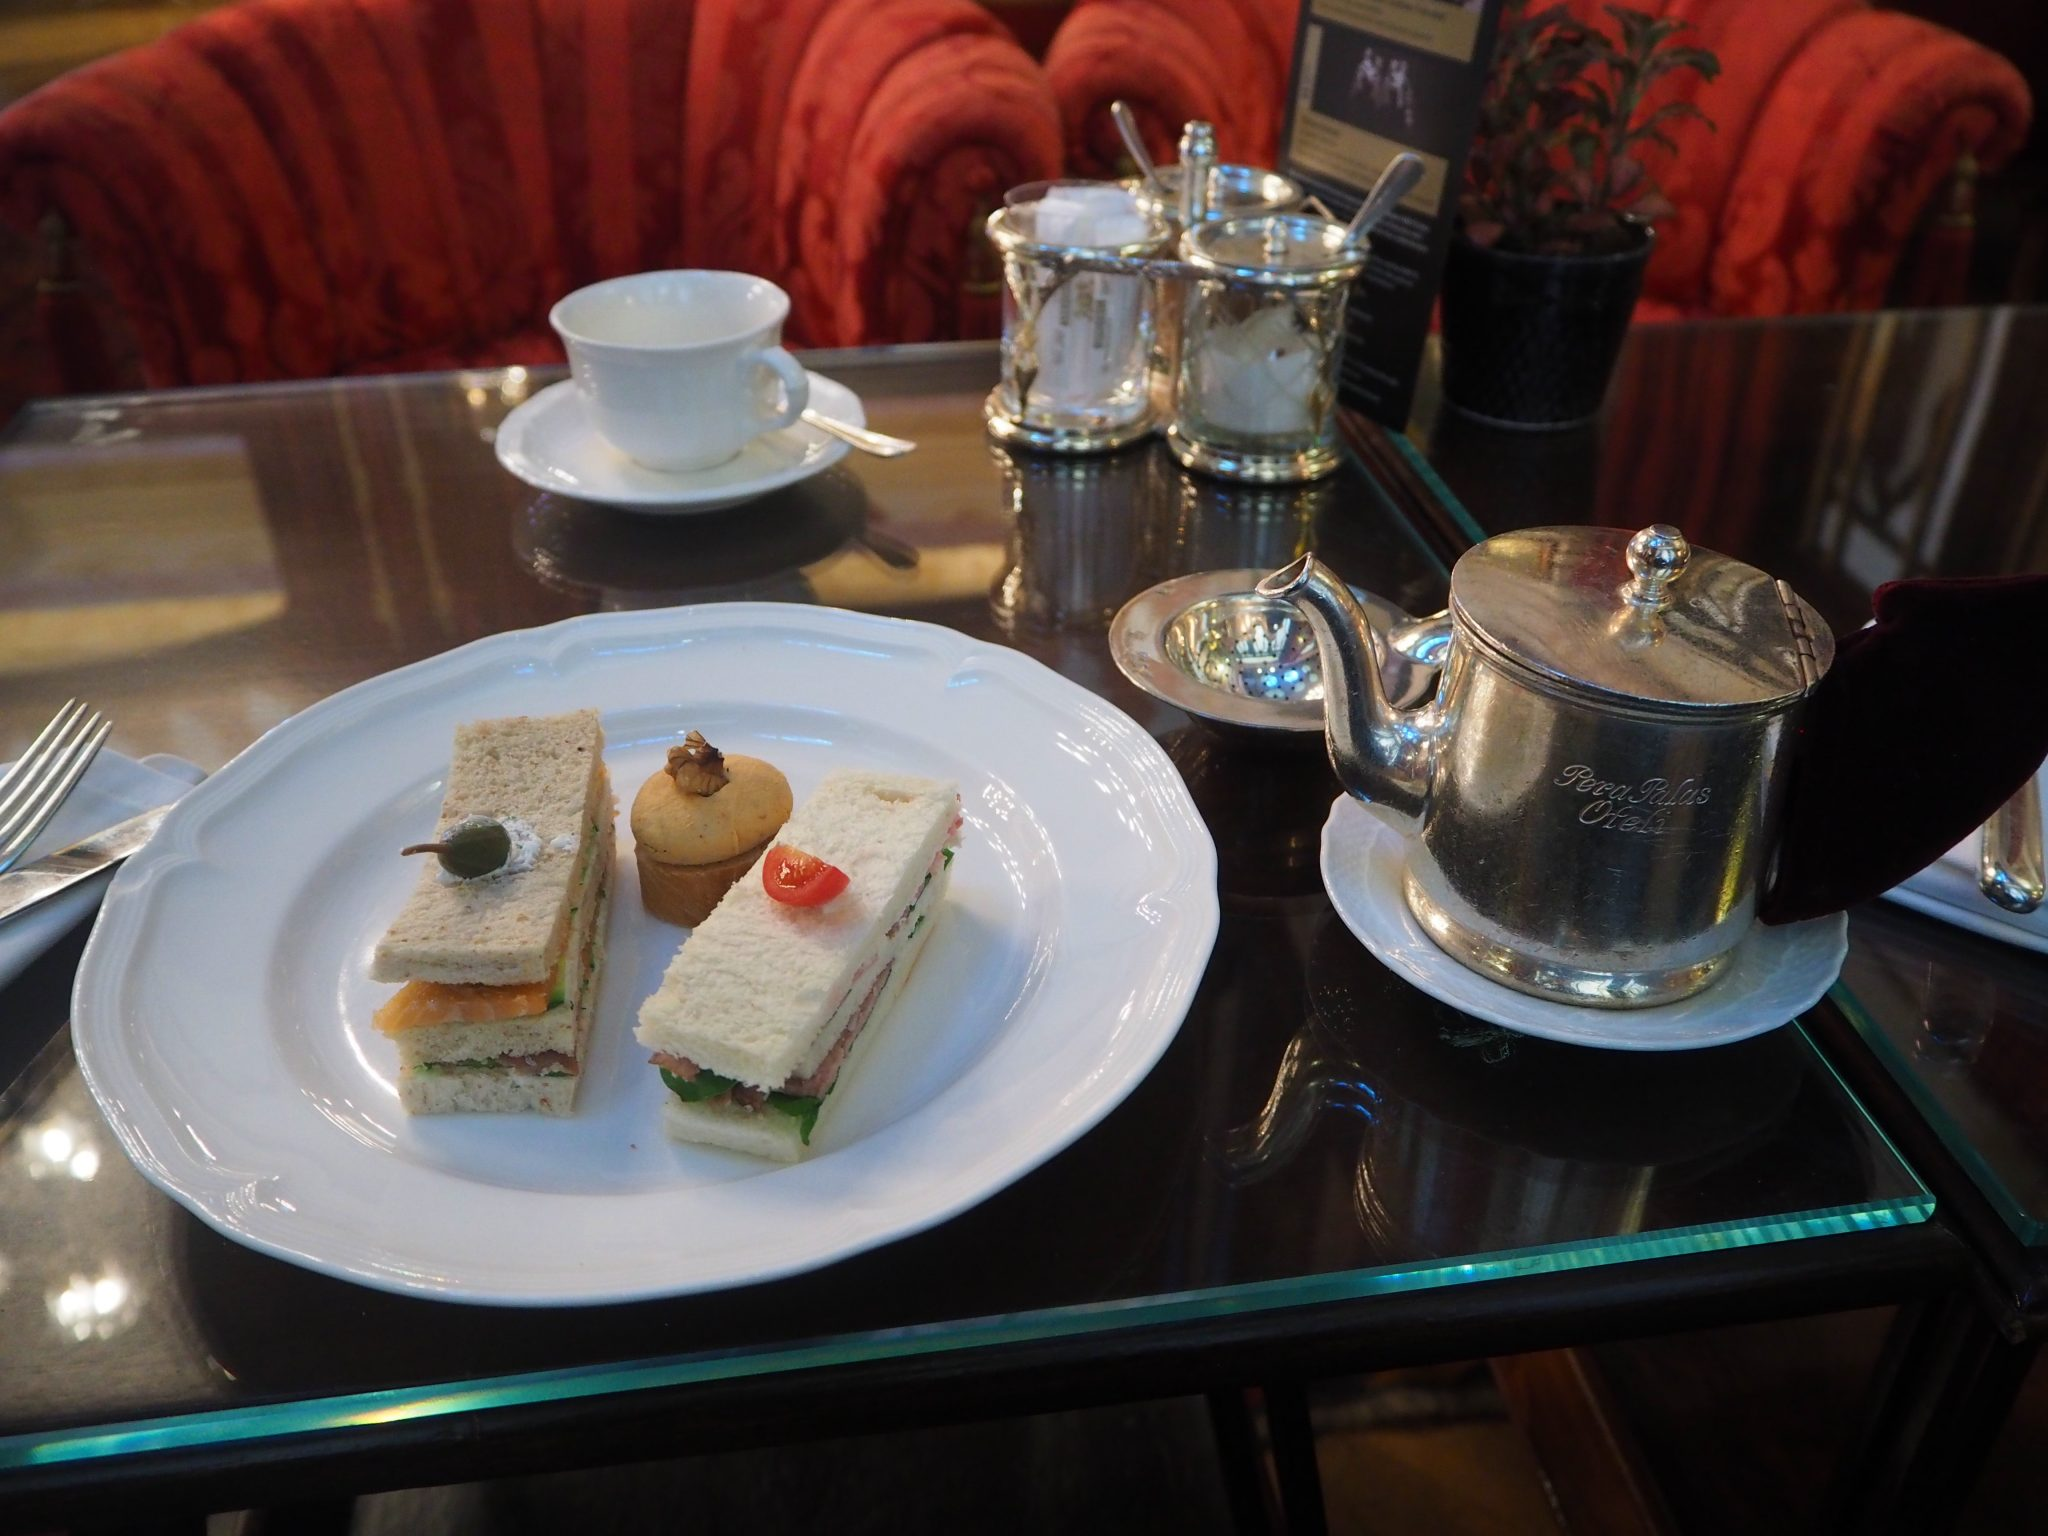 The Afternoon Tea Savouries